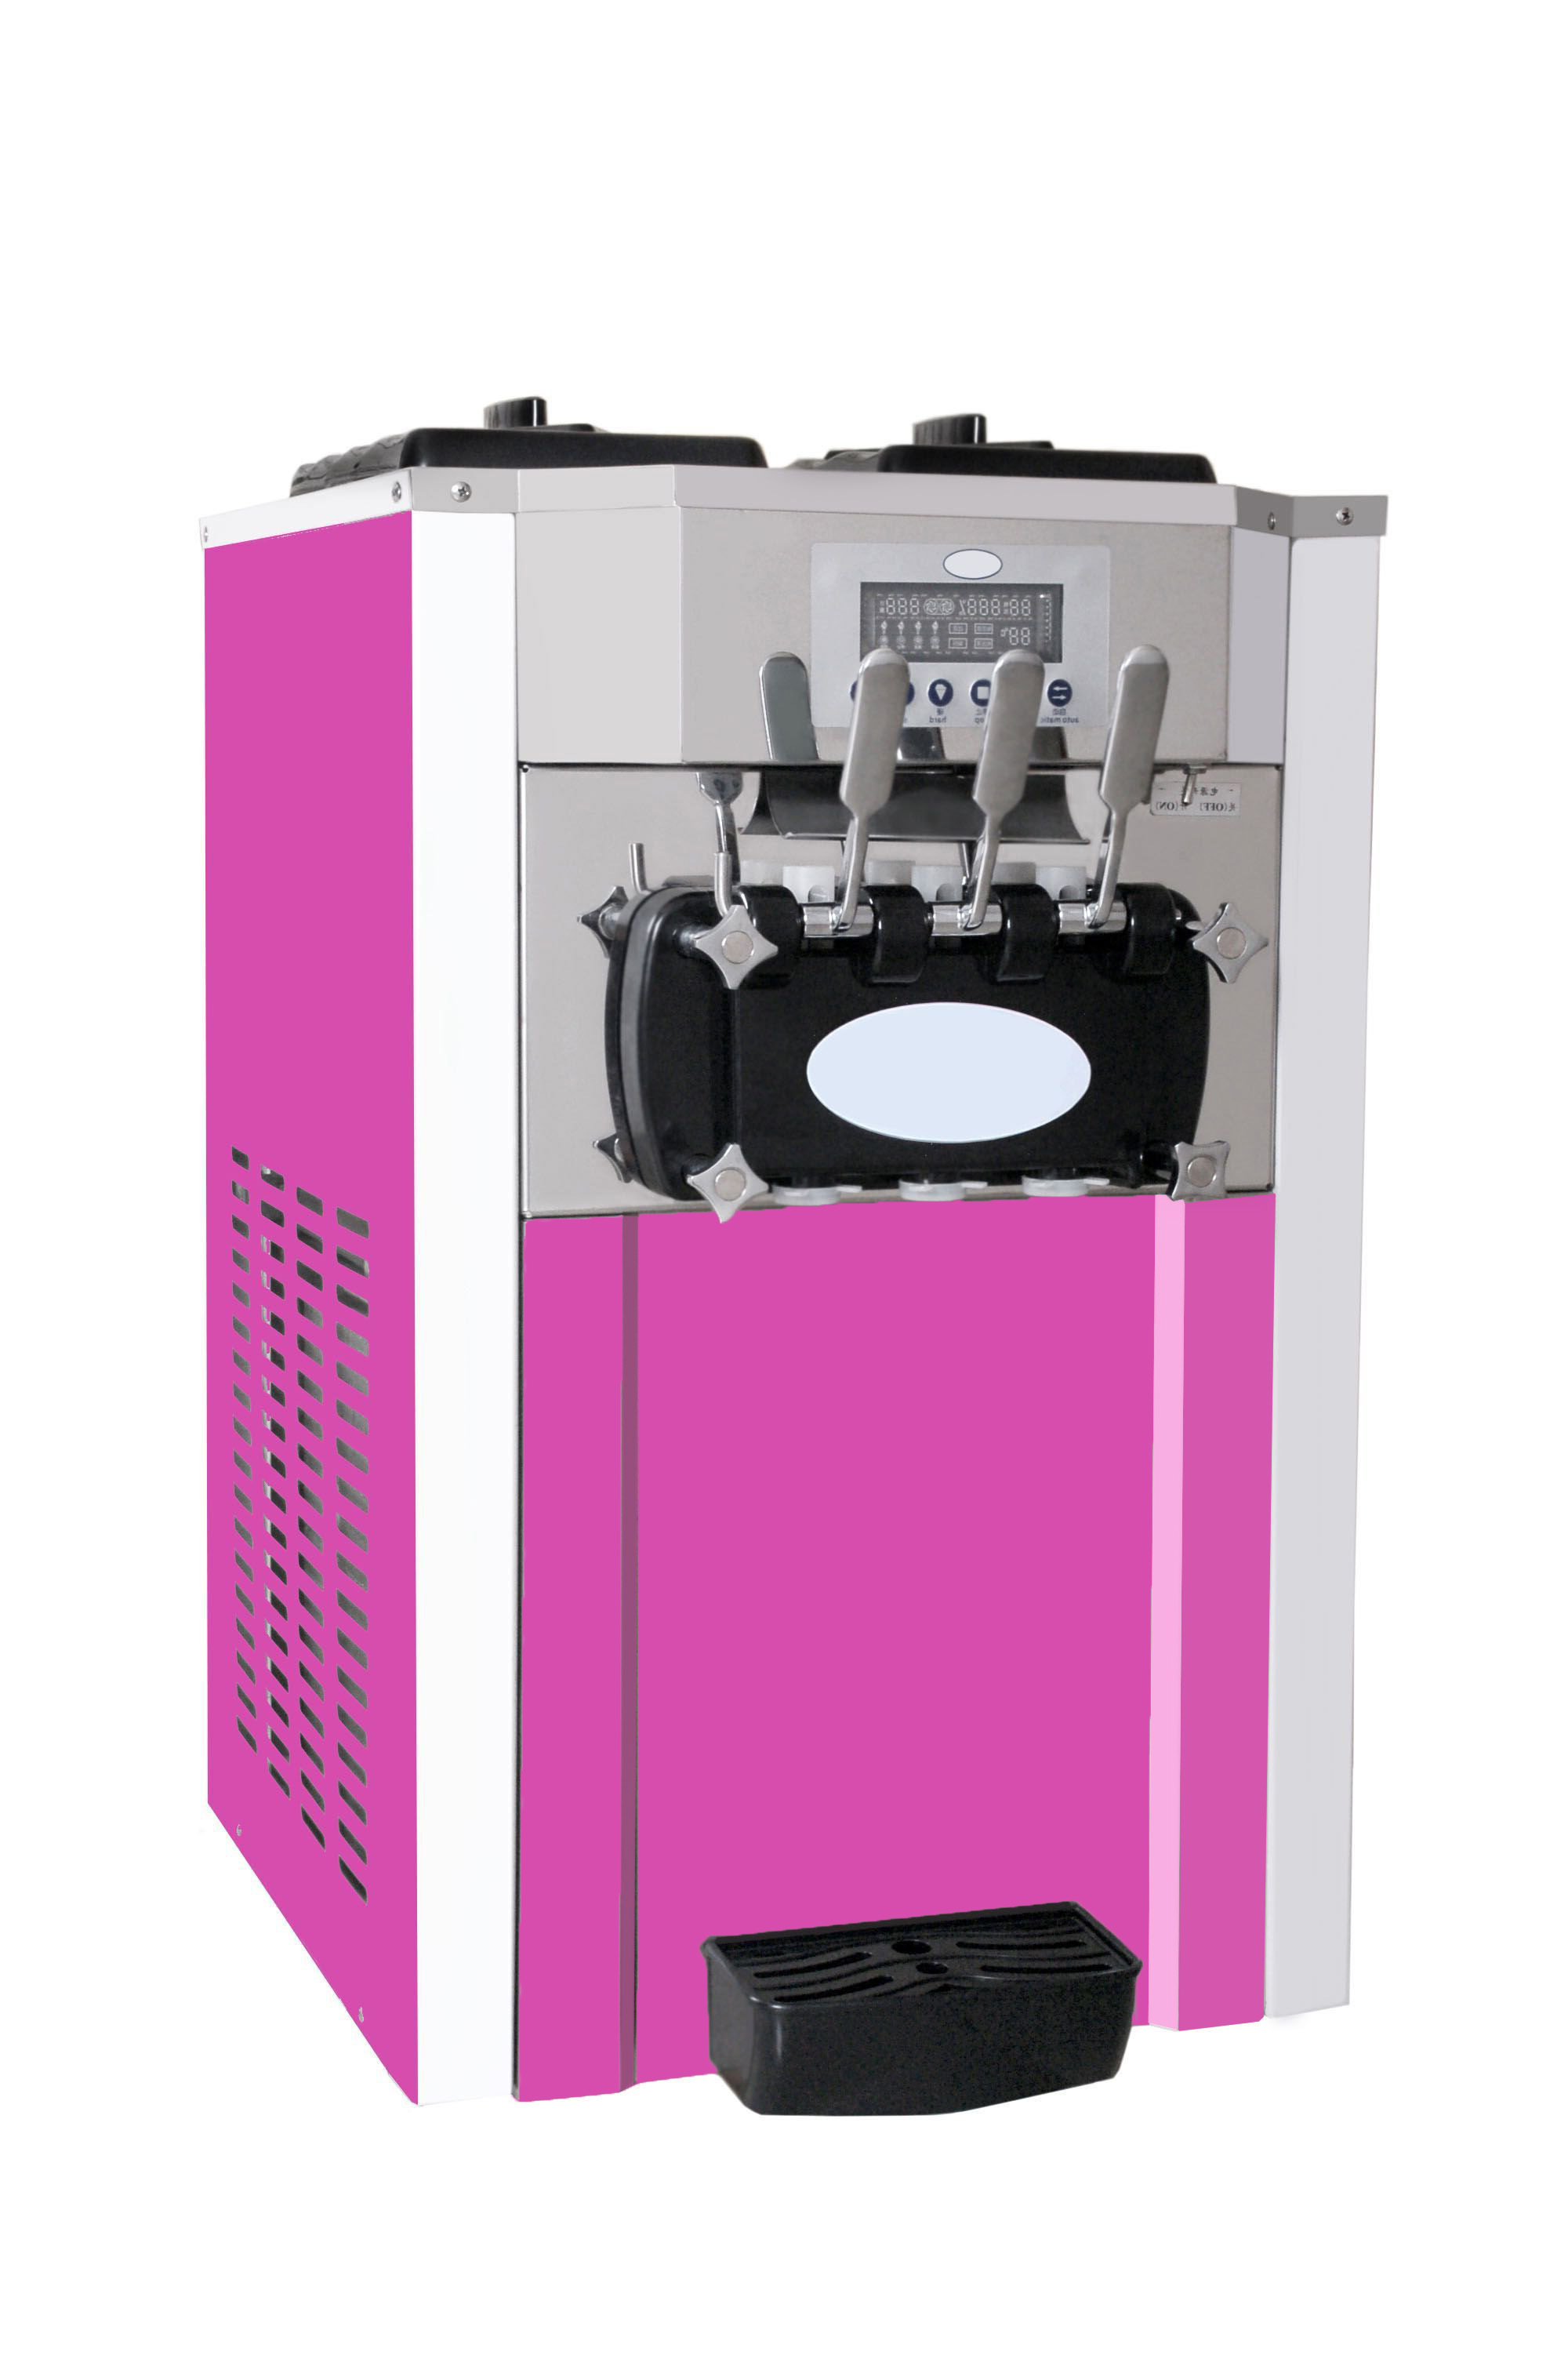 Pre Cooling Air Pump Soft Ice Cream Snack Machine Maker